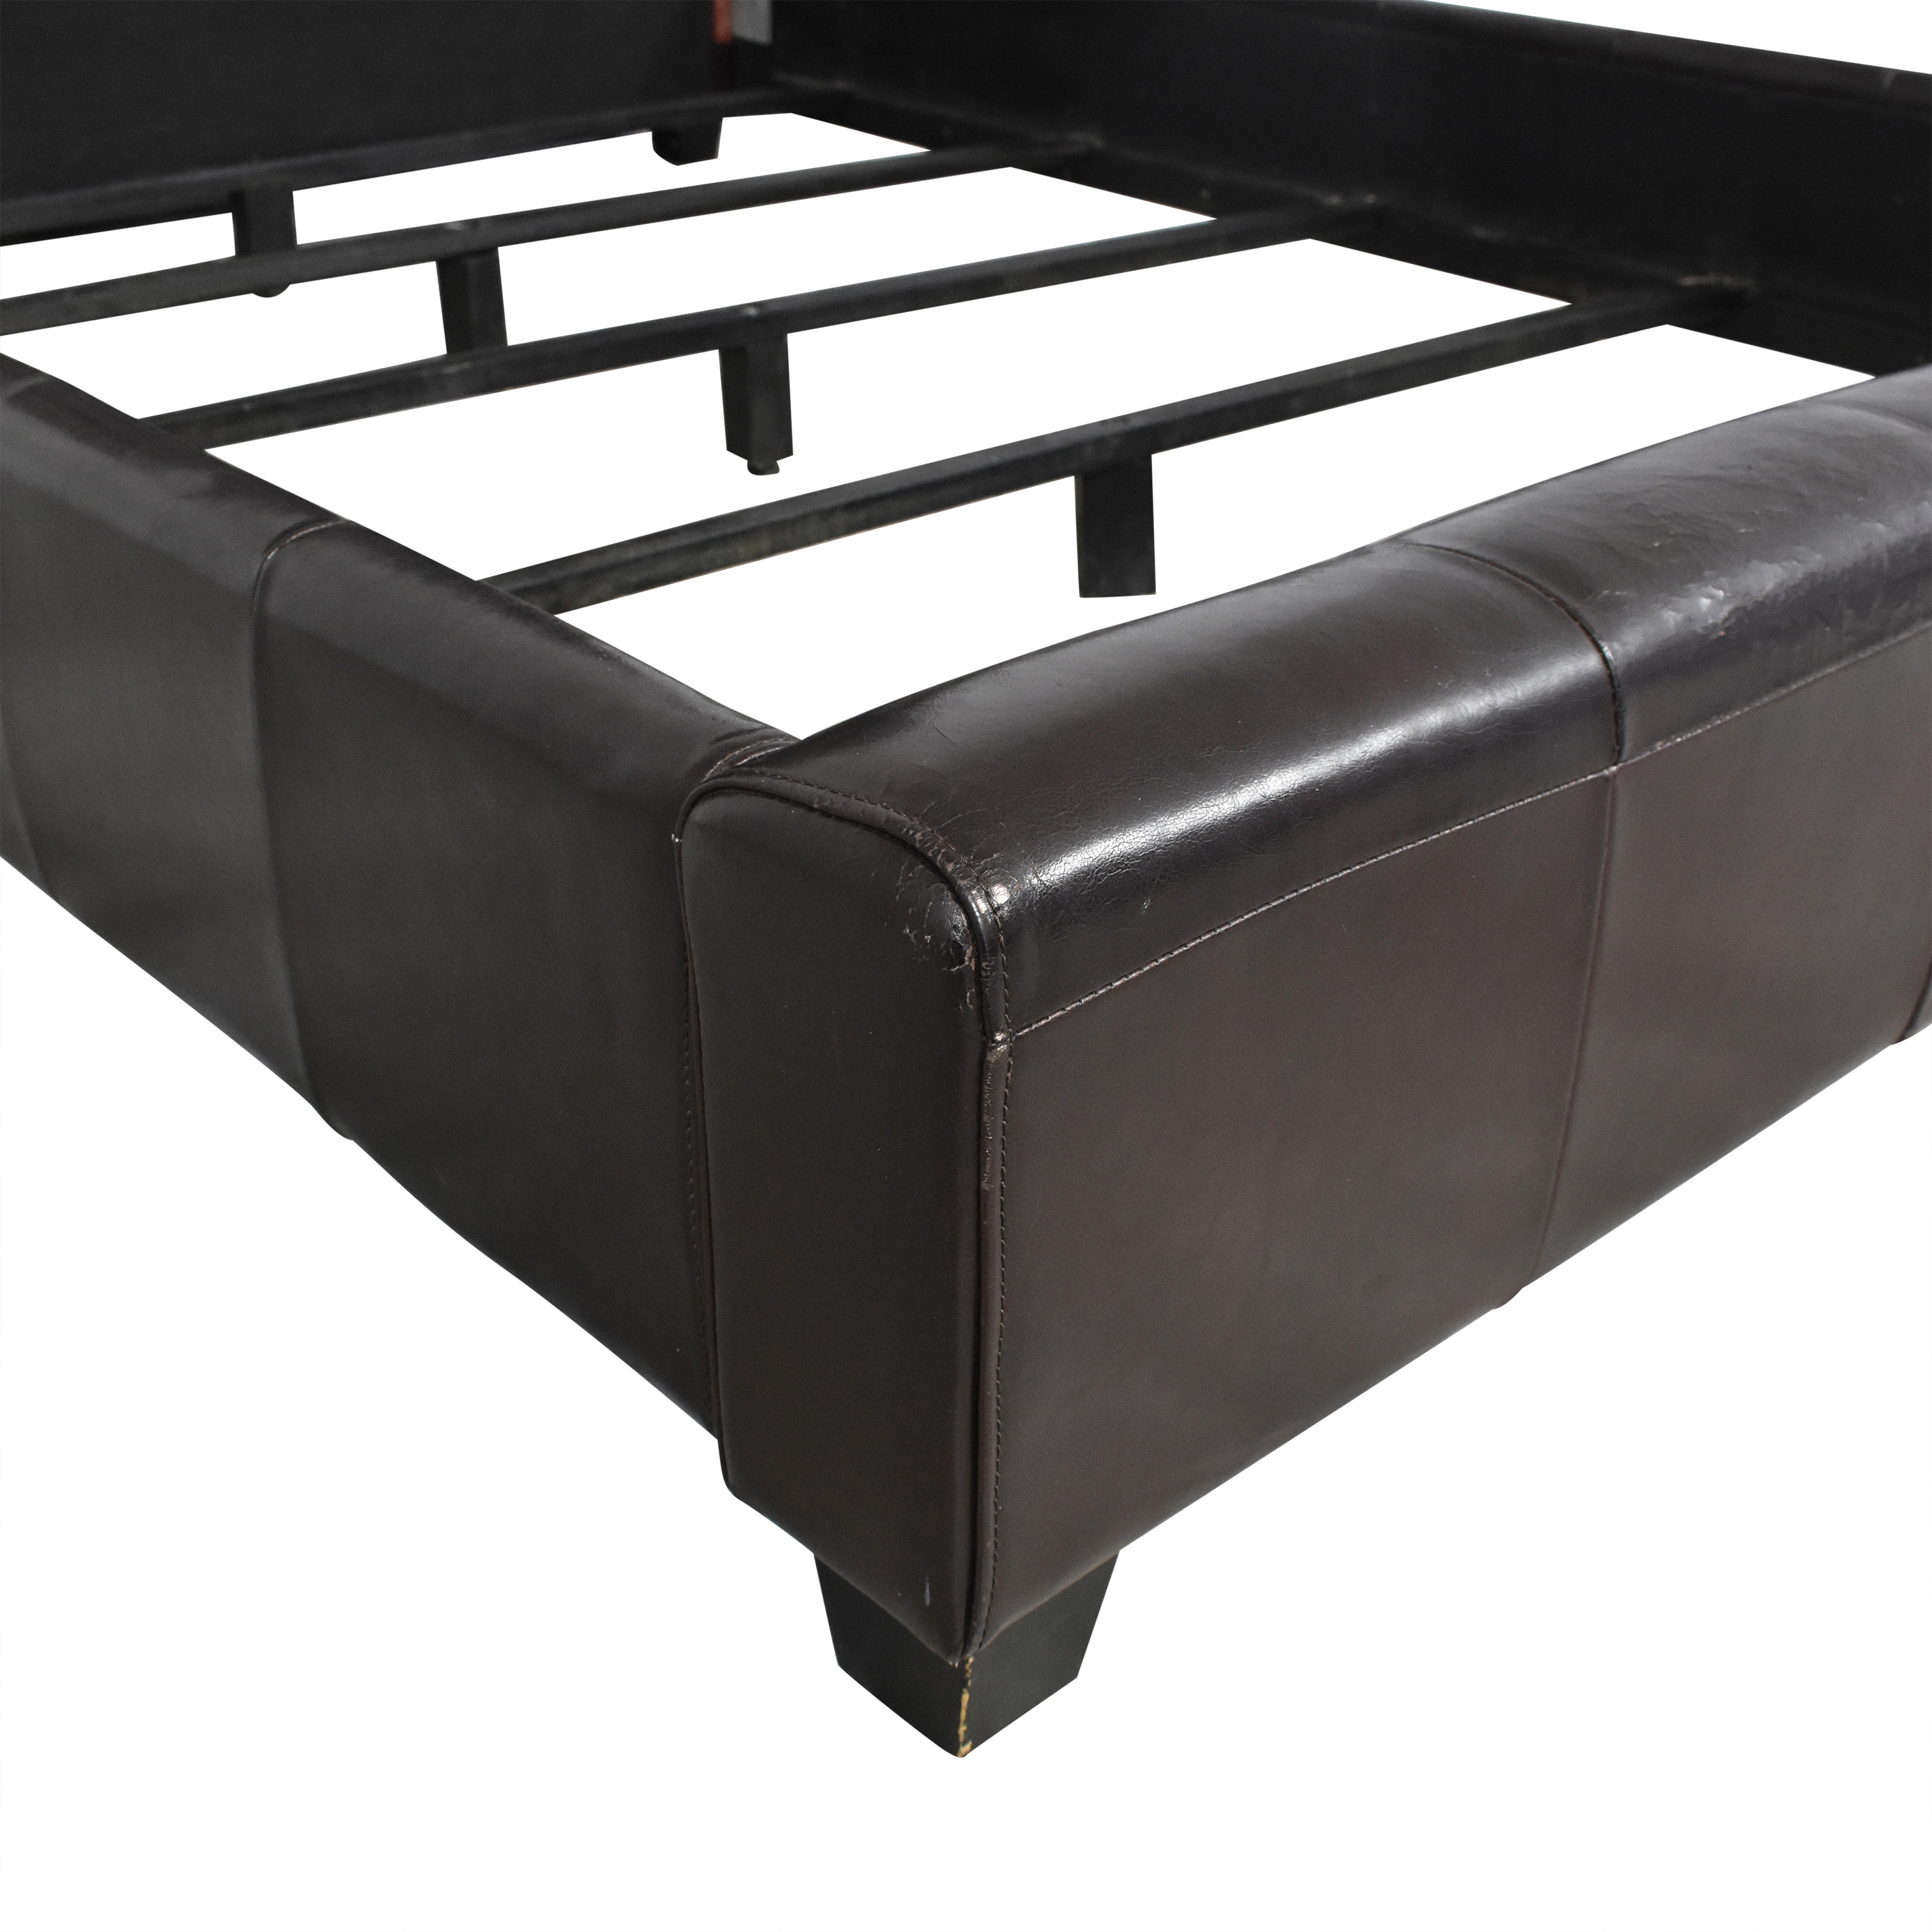 Macy's Macy's Tufted Leather Queen Size Bed price